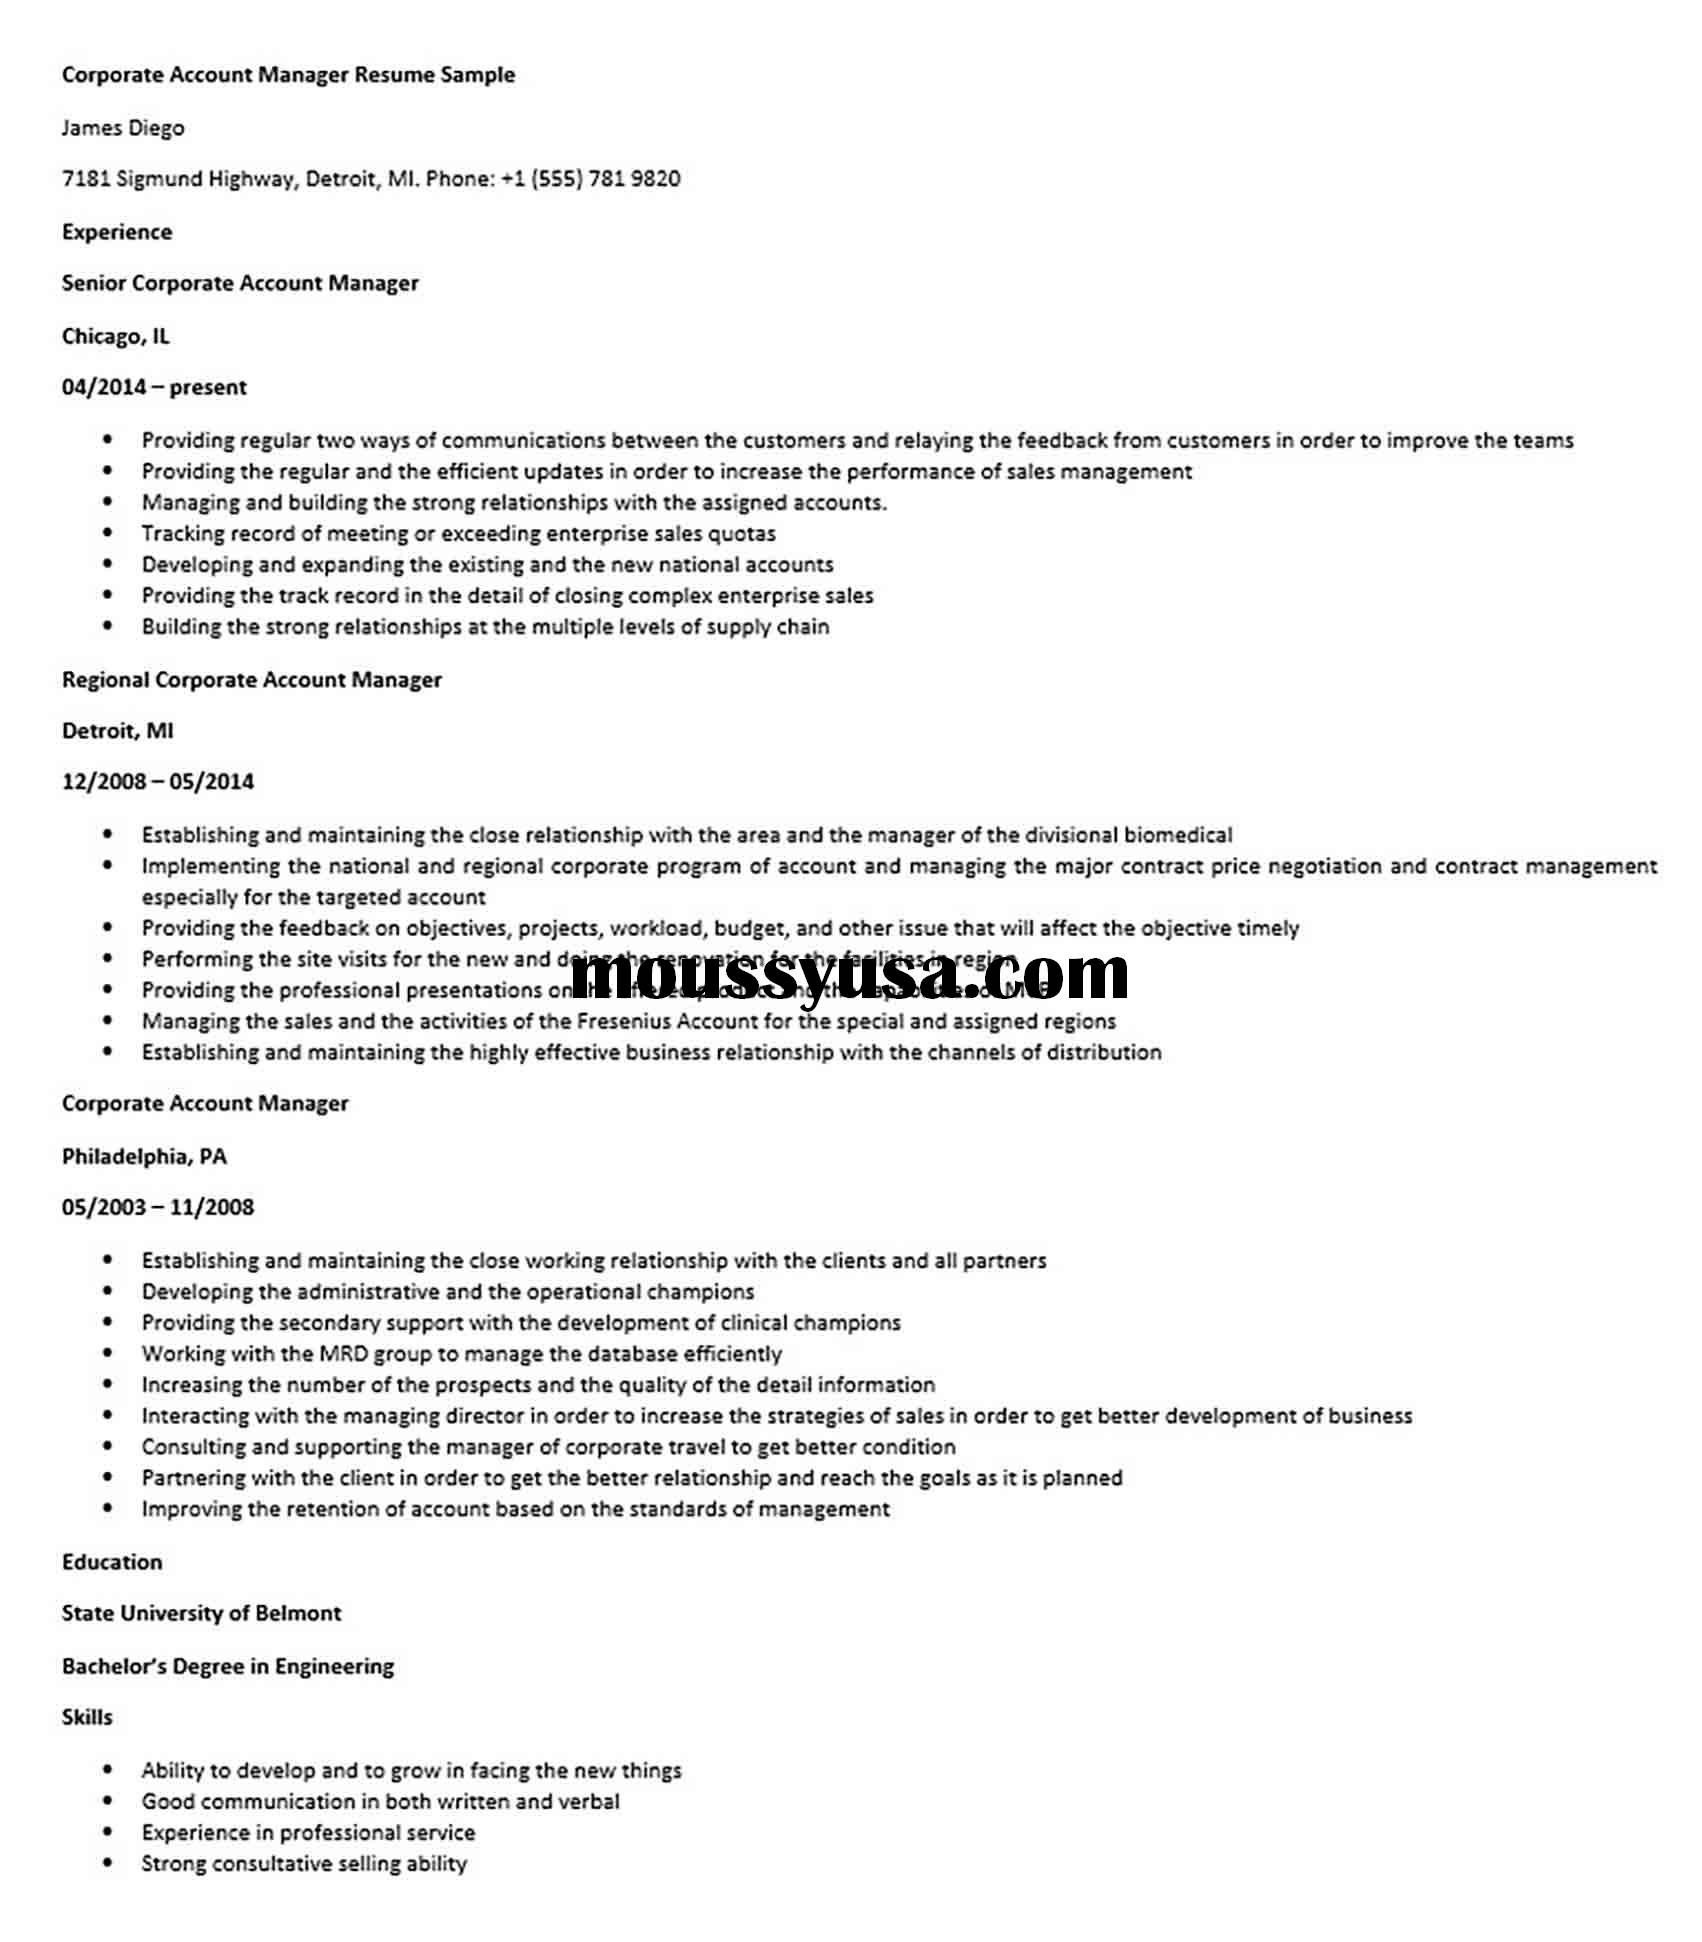 Corporate Account Manager Resume Sample